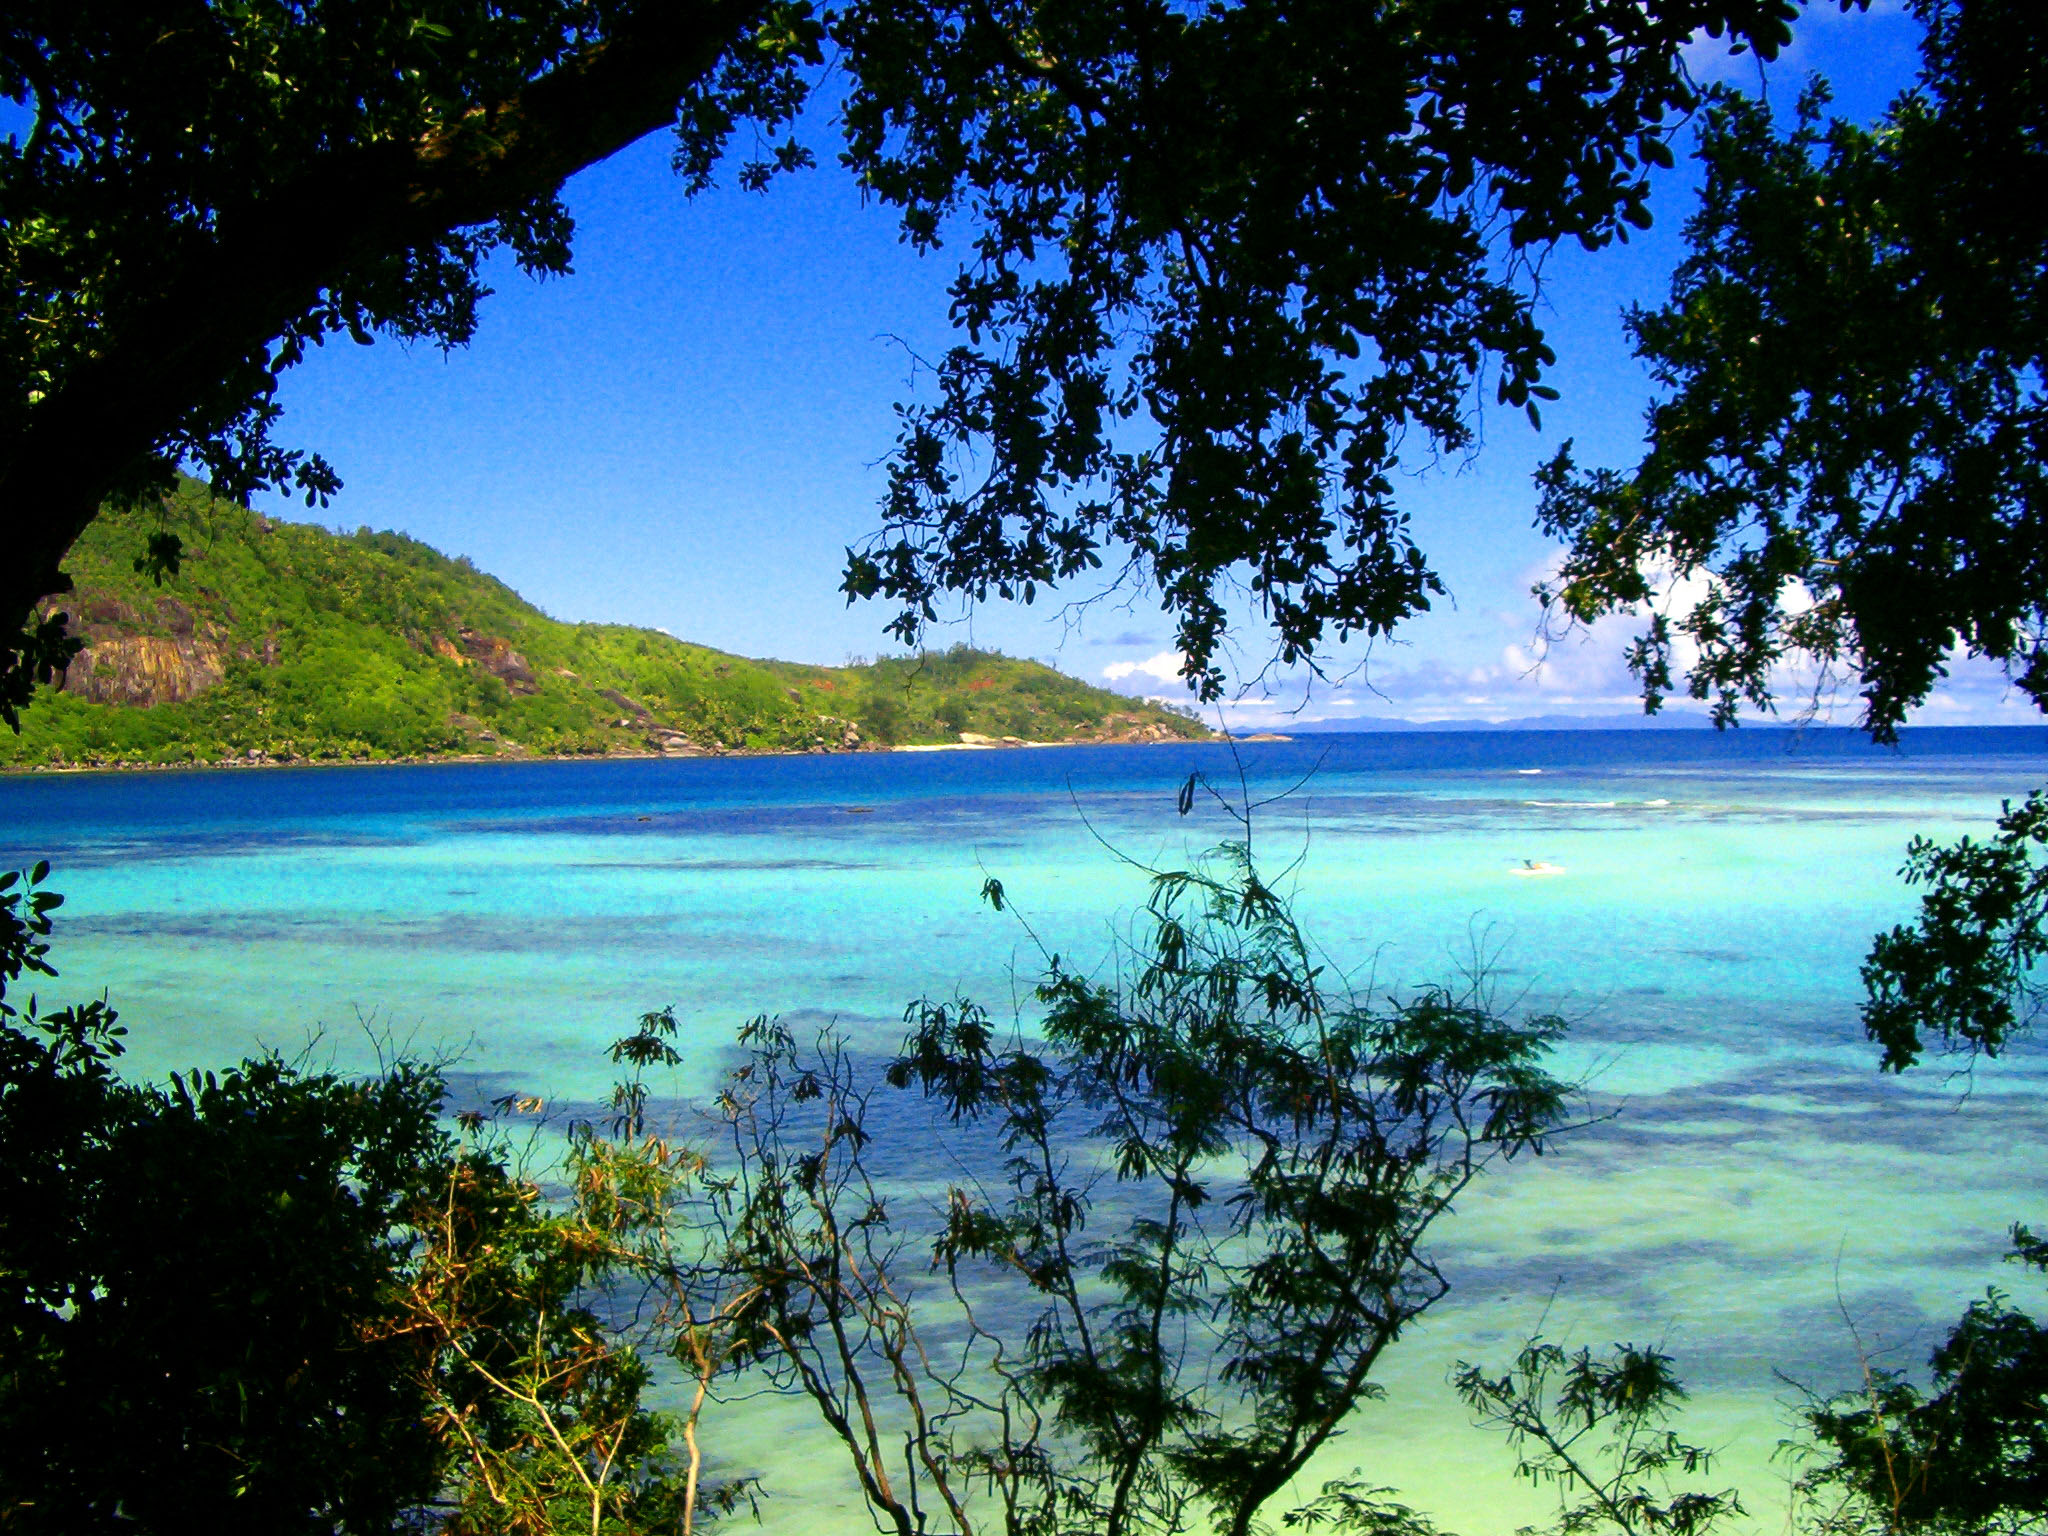 Seychelles, The Verdure Amidst Turquoise Waters